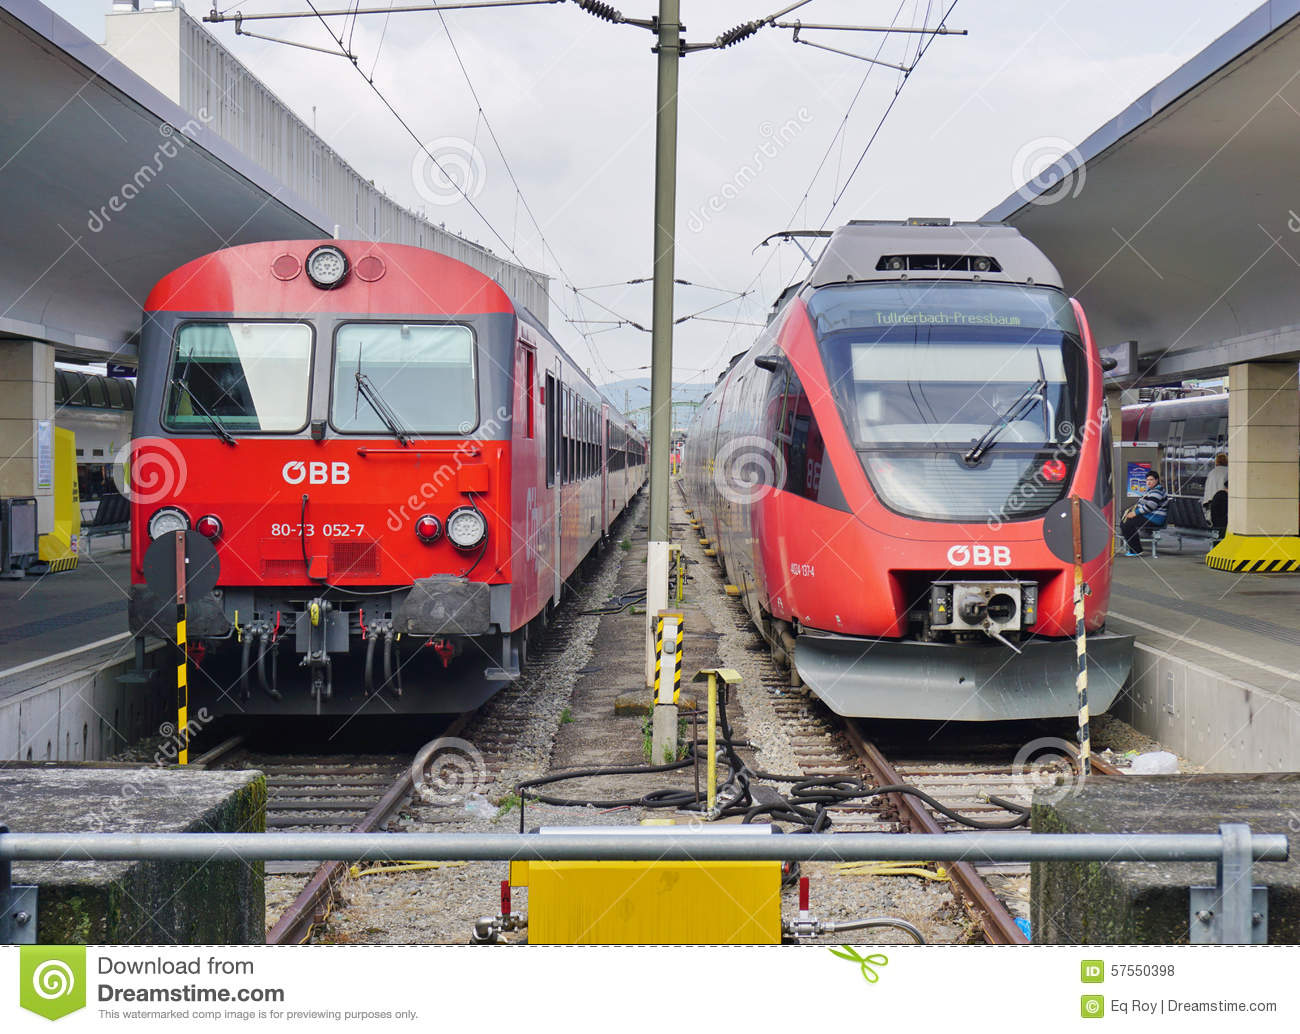 OBB Trains In Austria At The Station In Vienna Editorial Stock Photo - Image of station, european: 57550398